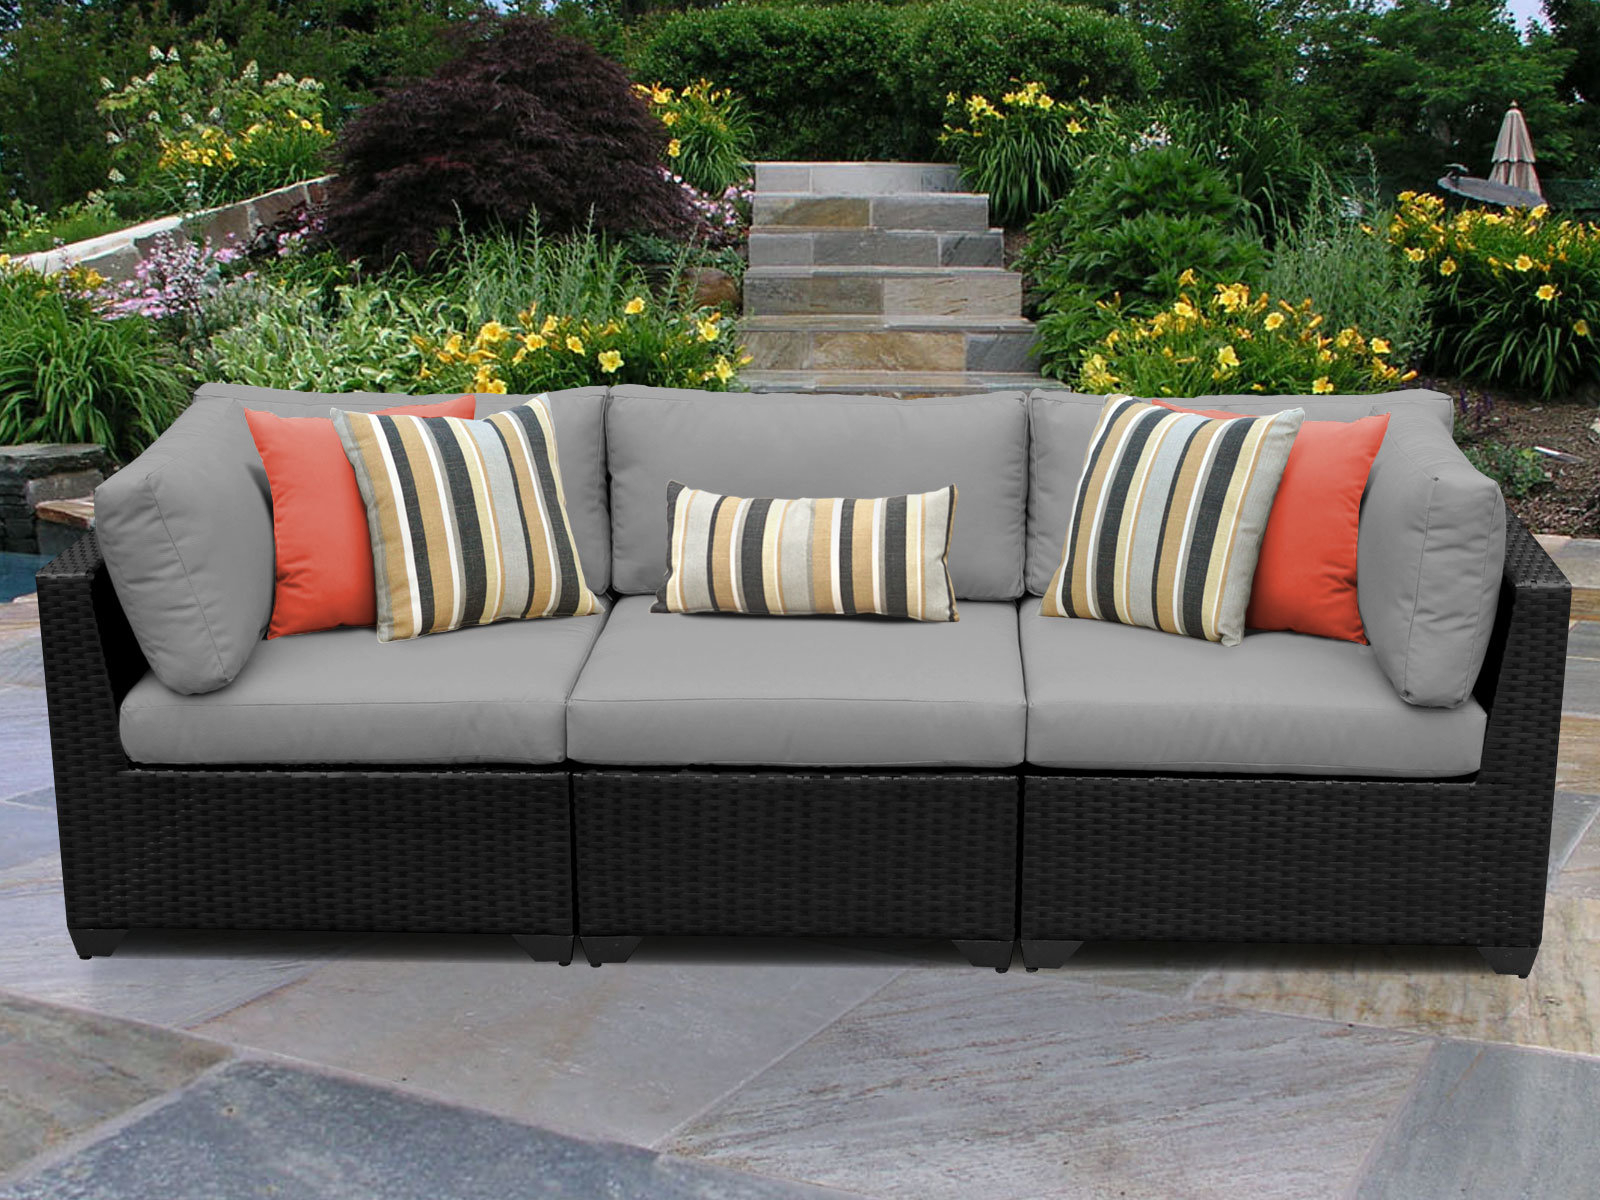 Fashionable Purington Circular Patio Sectionals With Cushions Throughout Camak Patio Sofa With Cushions (View 15 of 20)